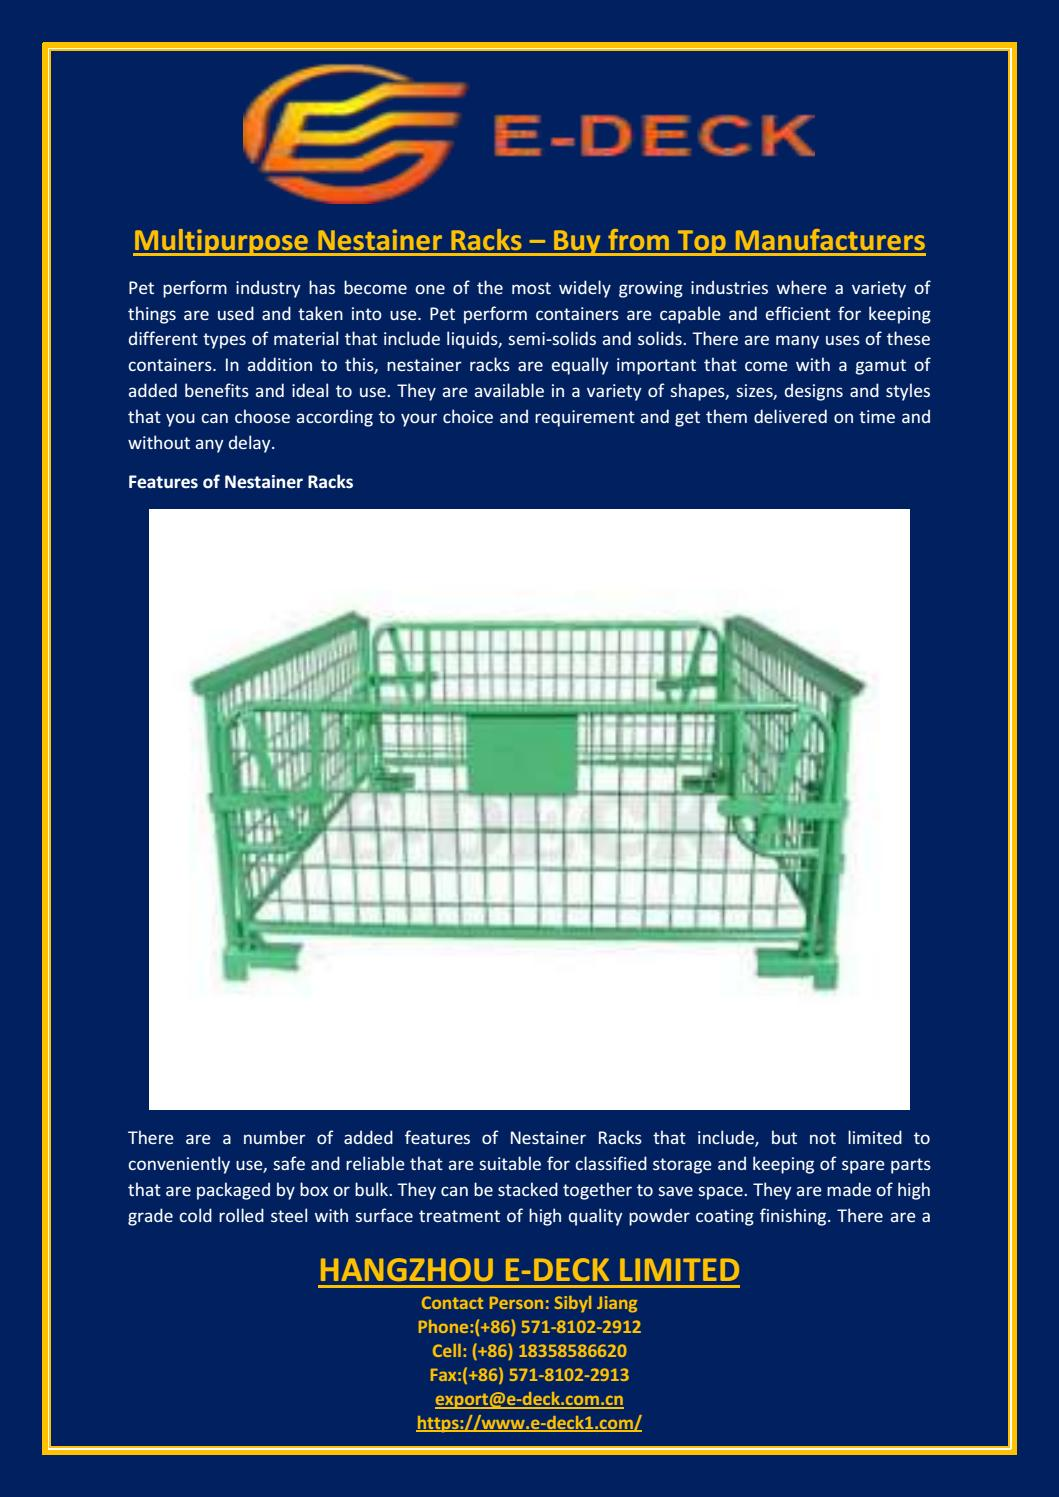 Multipurpose nestainer racks – buy from top manufacturers by